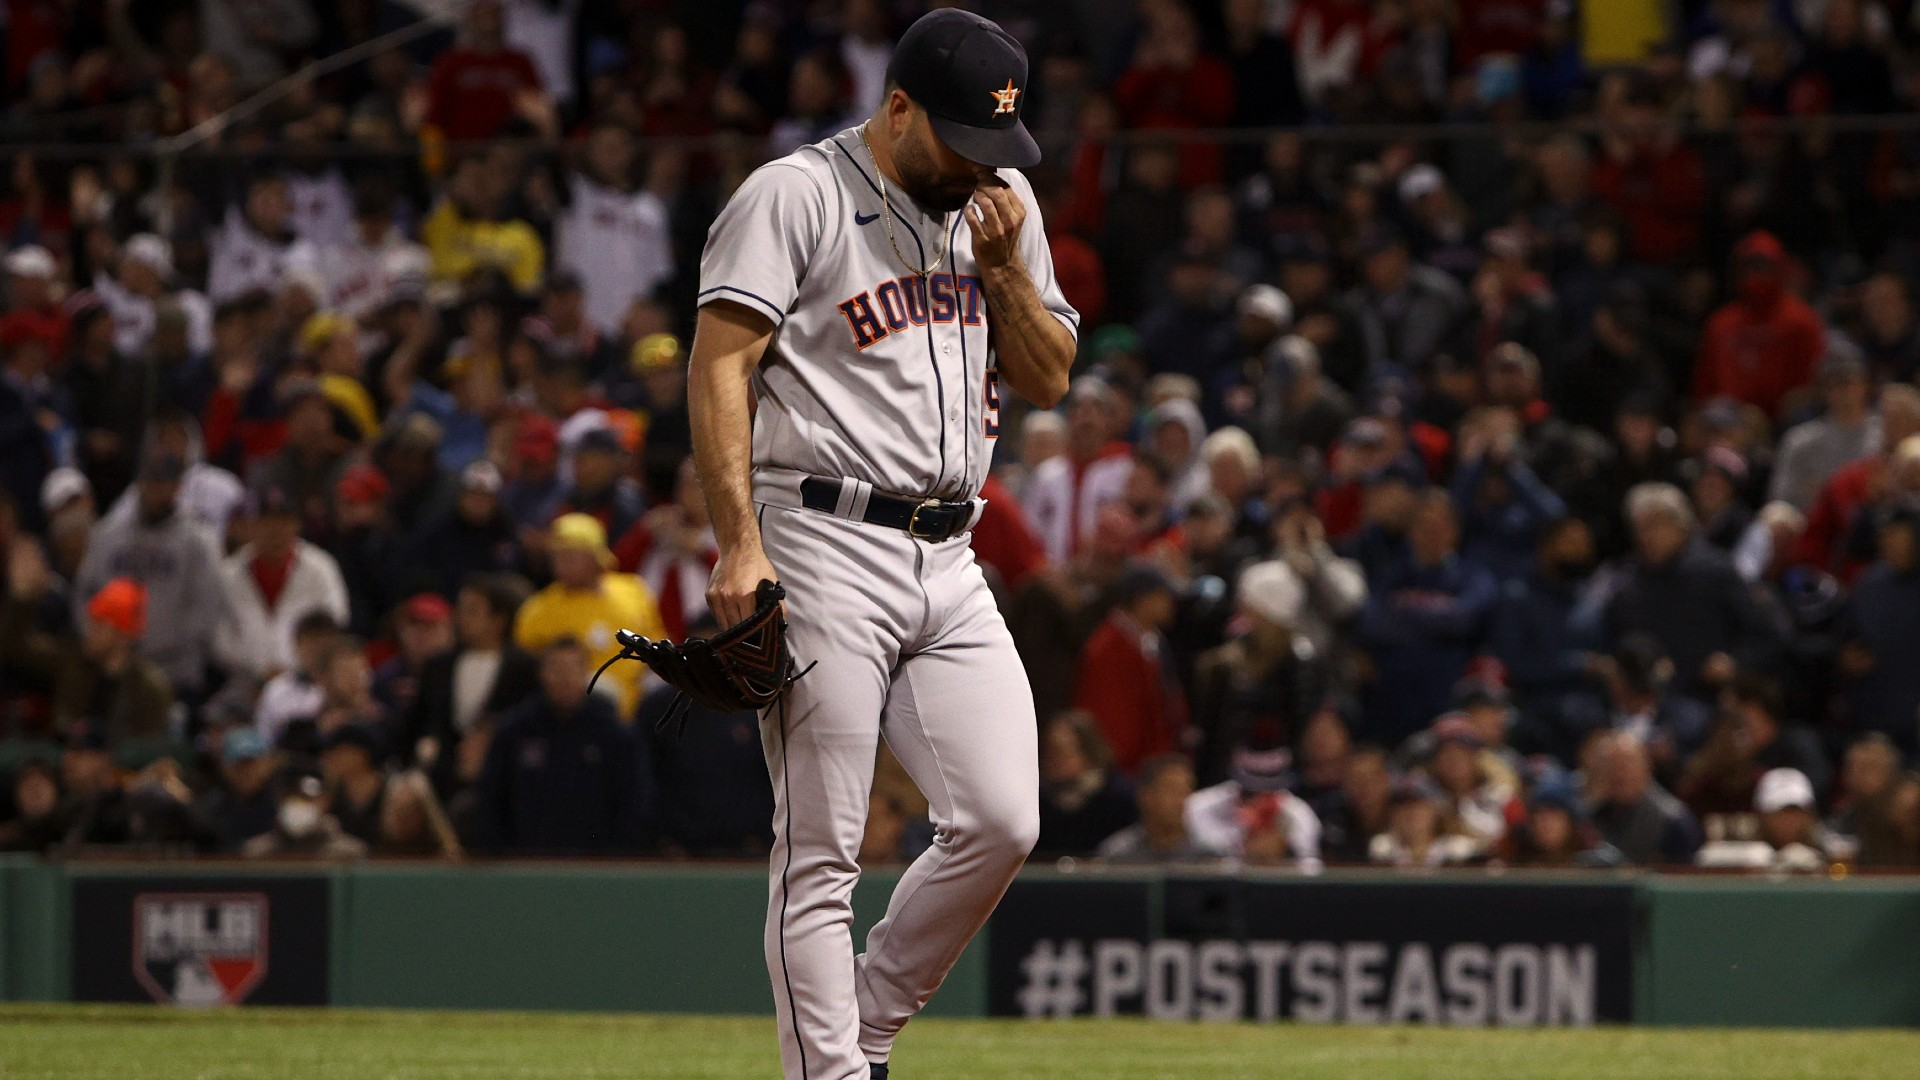 Houston Astros starting pitcher Jose Urquidy leaves the game against the Boston Red Sox during the second inning in Game 3 of baseball's American League Championship Series Monday, Oct. 18, 2021, in Boston. (AP Photo/Winslow Townson)